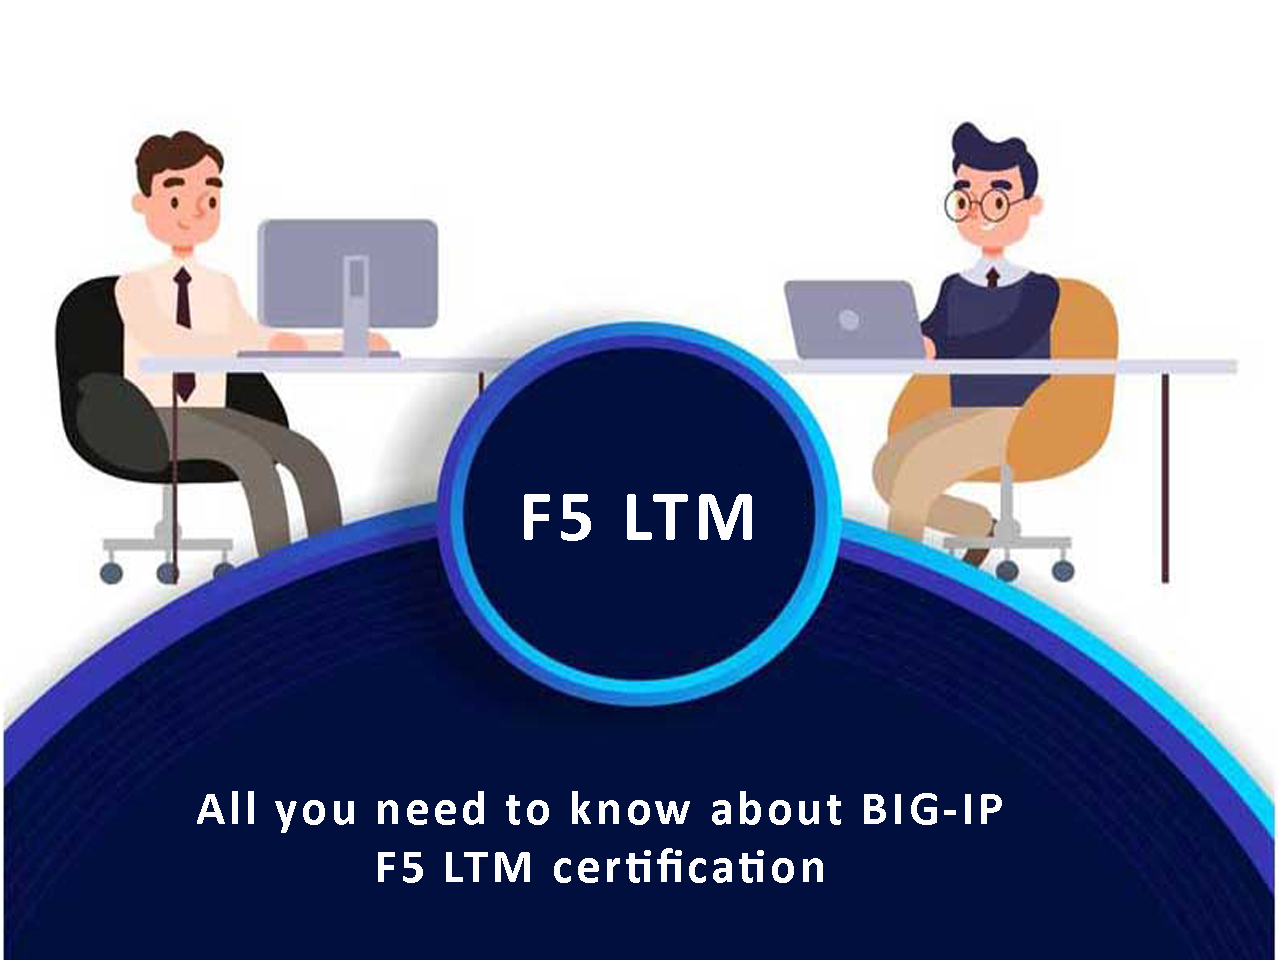 All you need to know about BIG-IP F5 LTM certification